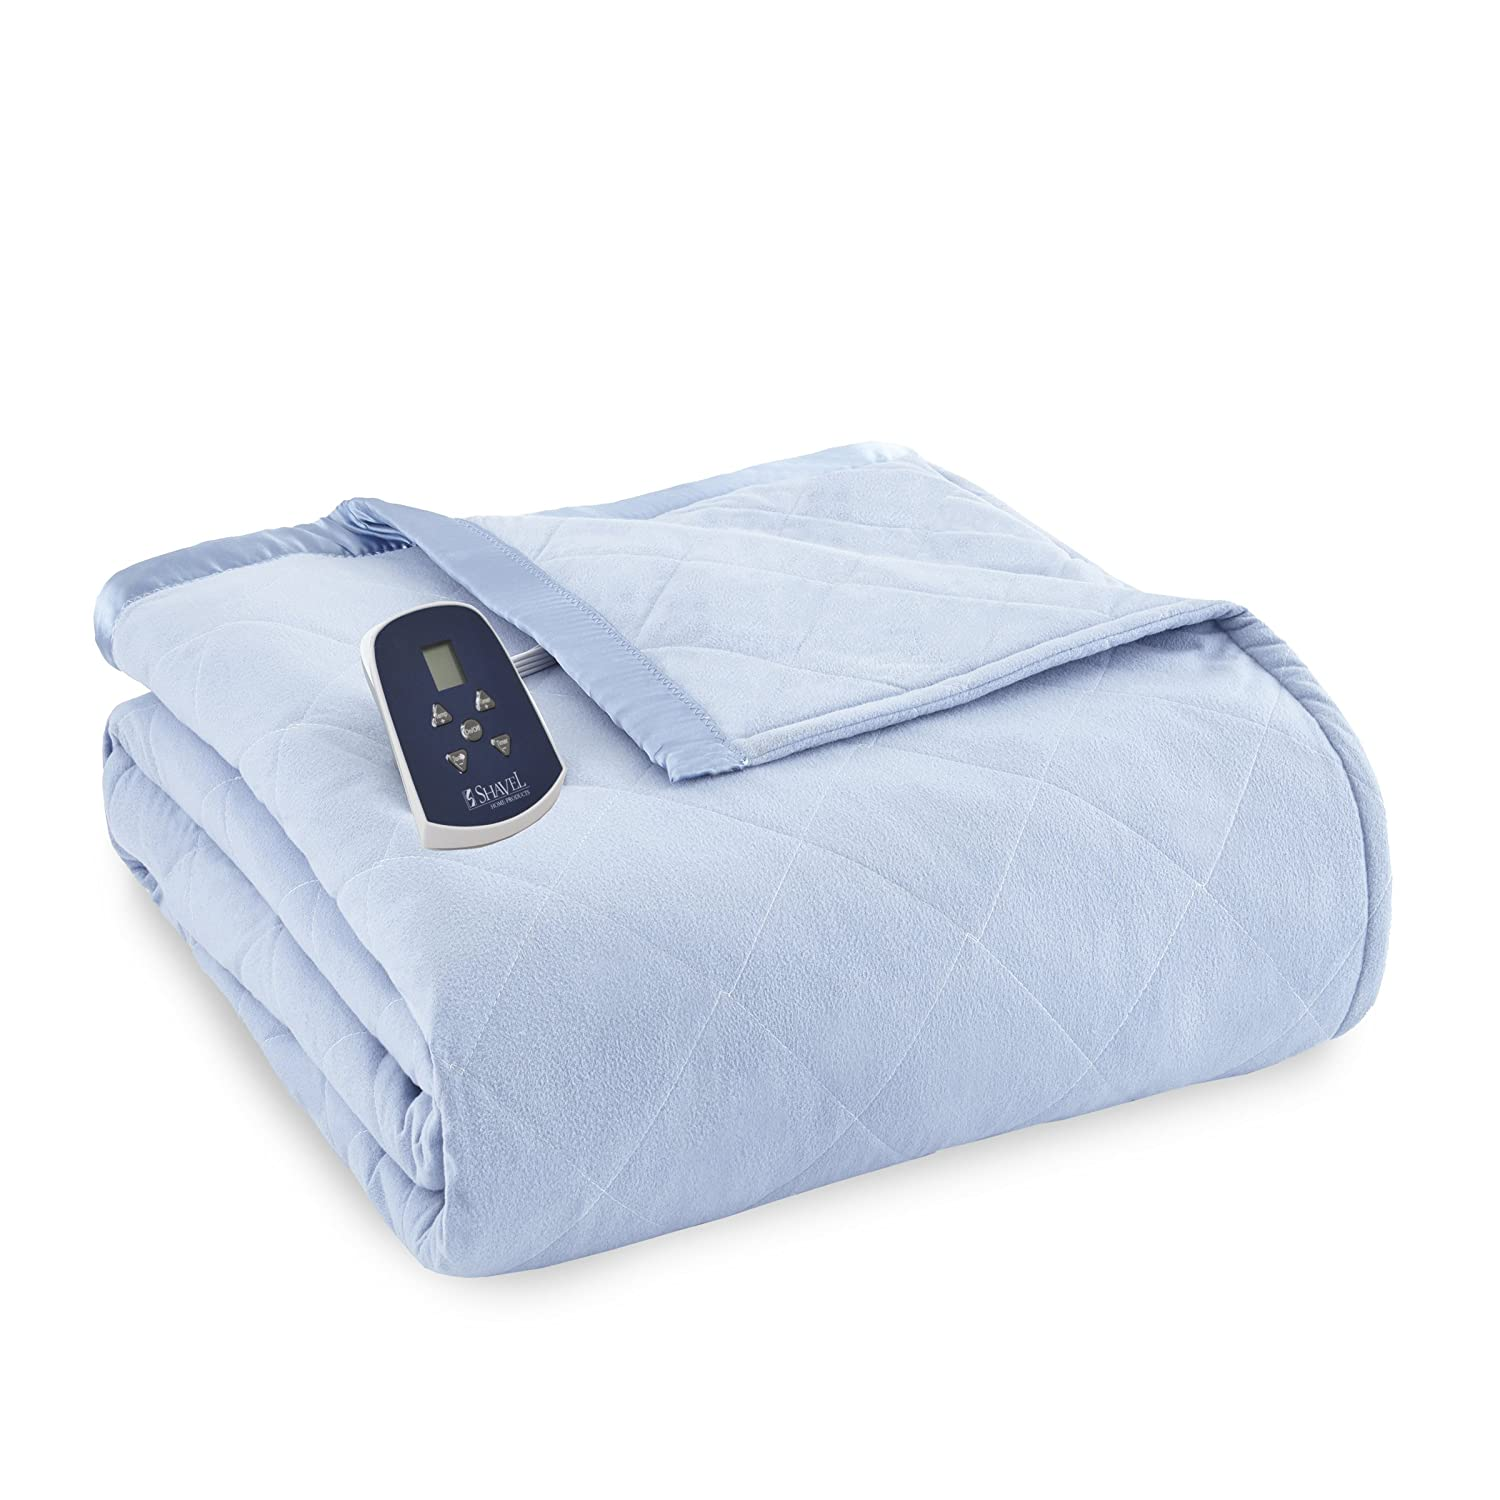 Shavel Home Products Thermee Electric Blanket, English Blue, Twin